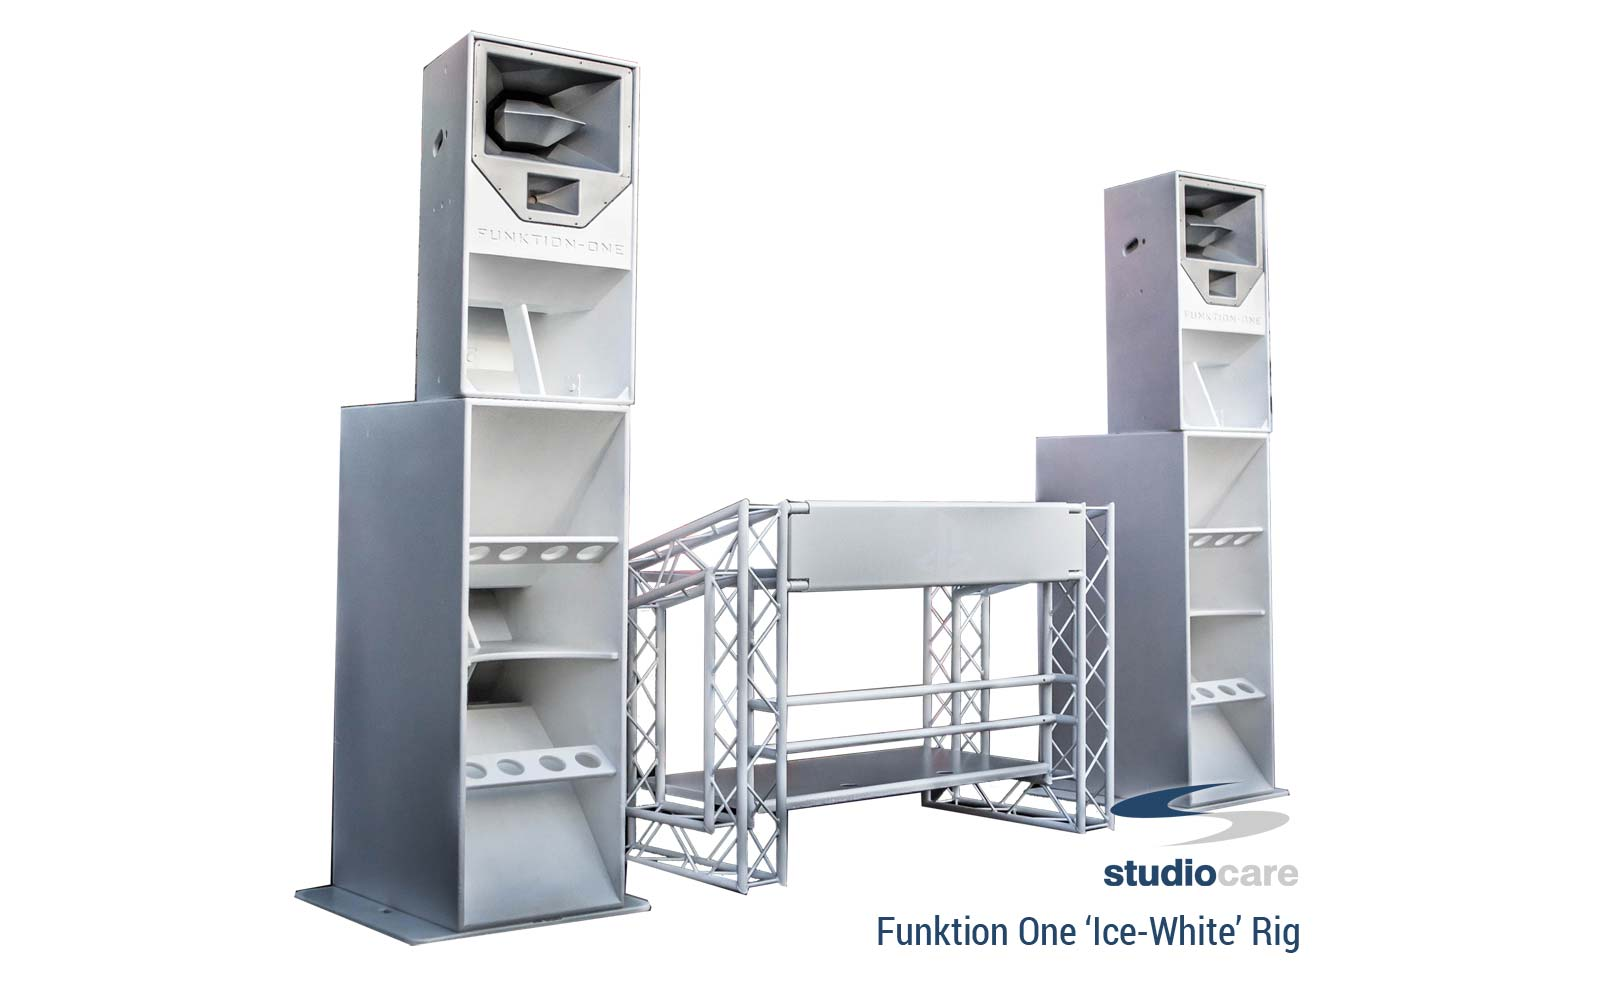 Funktion One Ice-White Rig